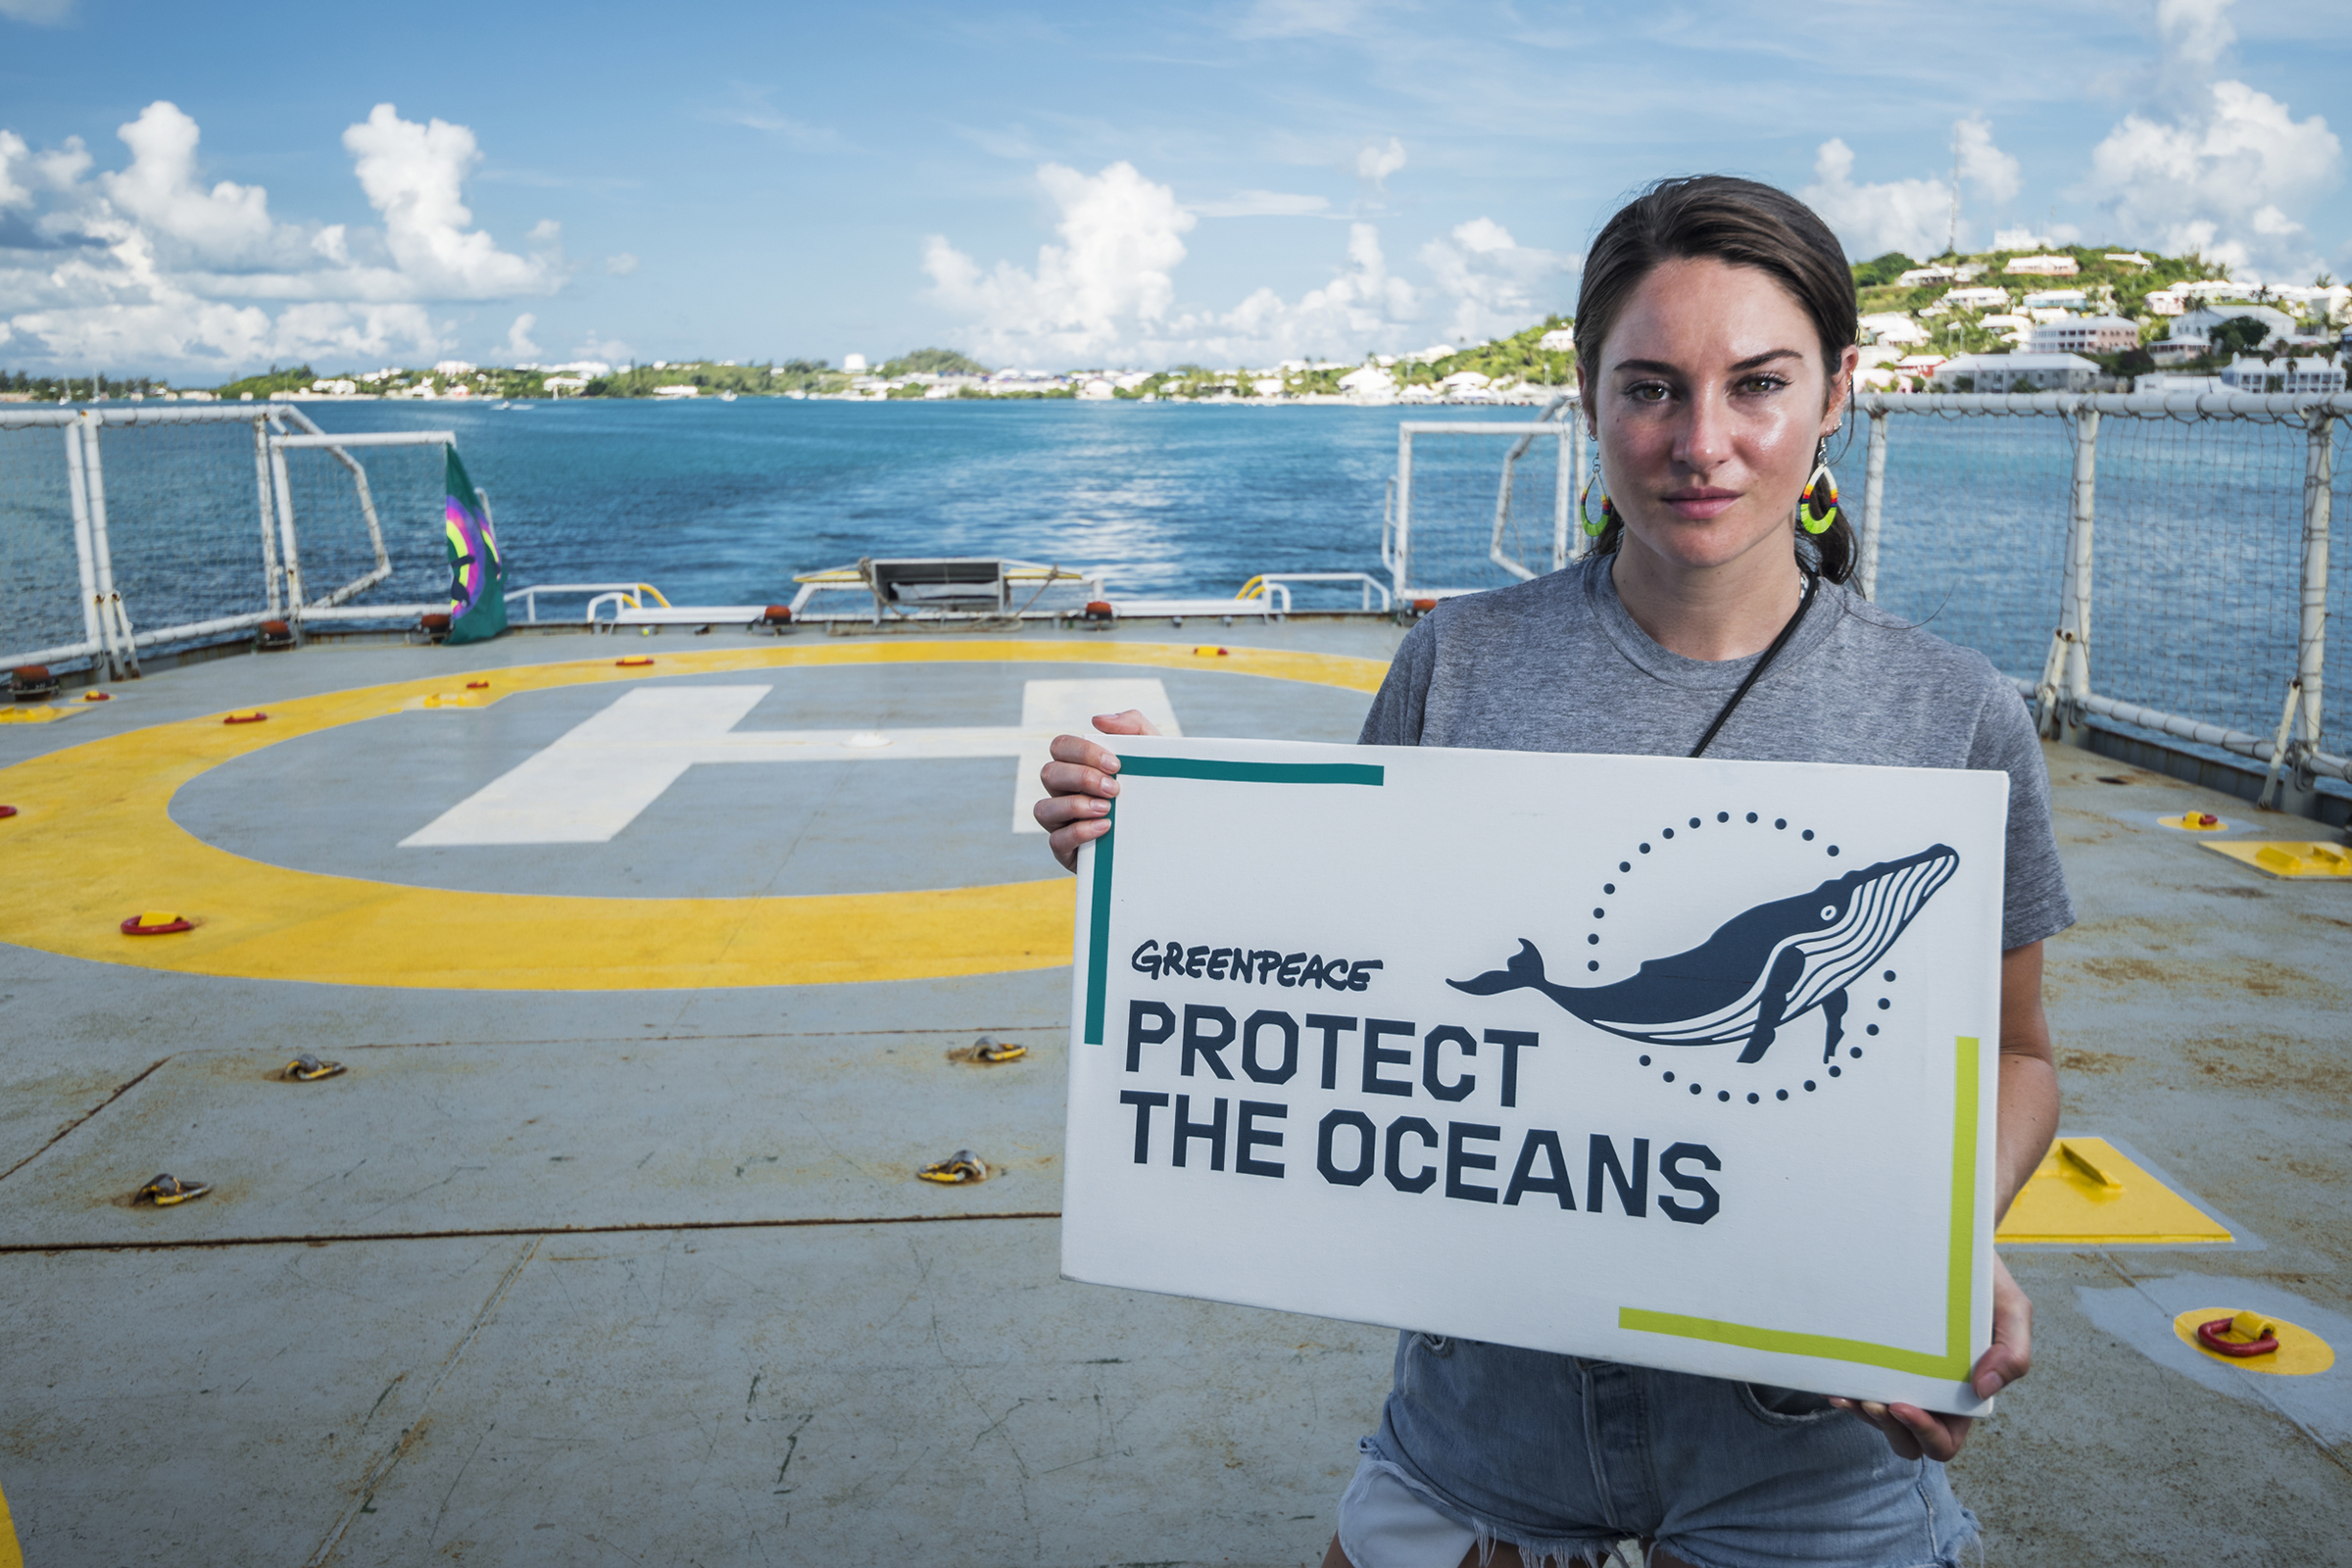 Shailene Woodley aboard the Greenpeace ship Esperanza departing Bermuda for the Sargasso Sea. The expedition will see Greenpeace and University of Florida researchers team up to study the impact of plastics and microplastics on marine life.